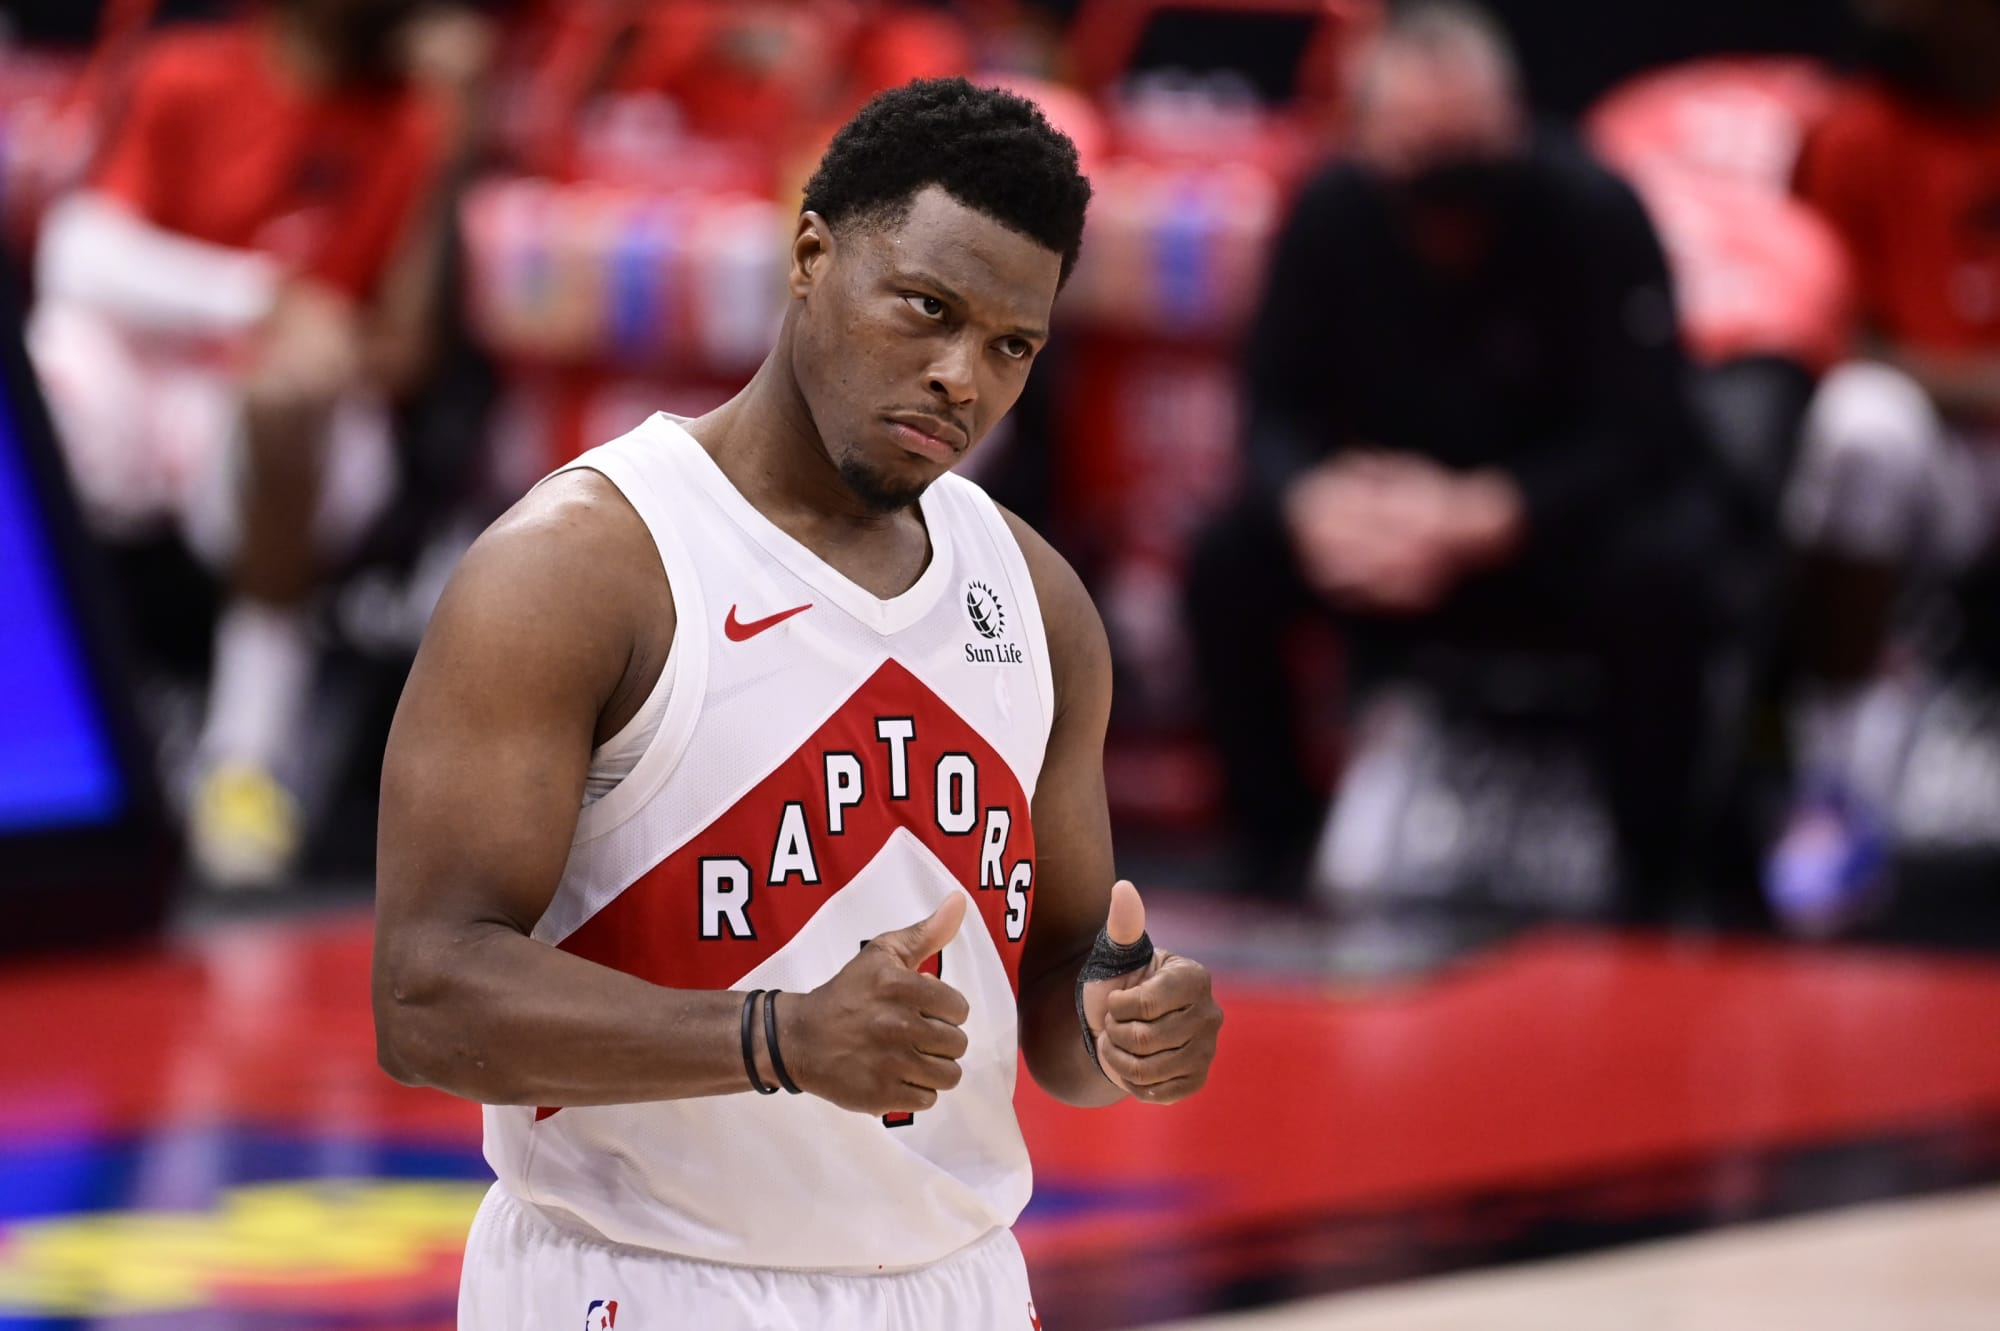 Raptors: Kyle Lowry says he'll retire a Raptor despite offseason uncertainty